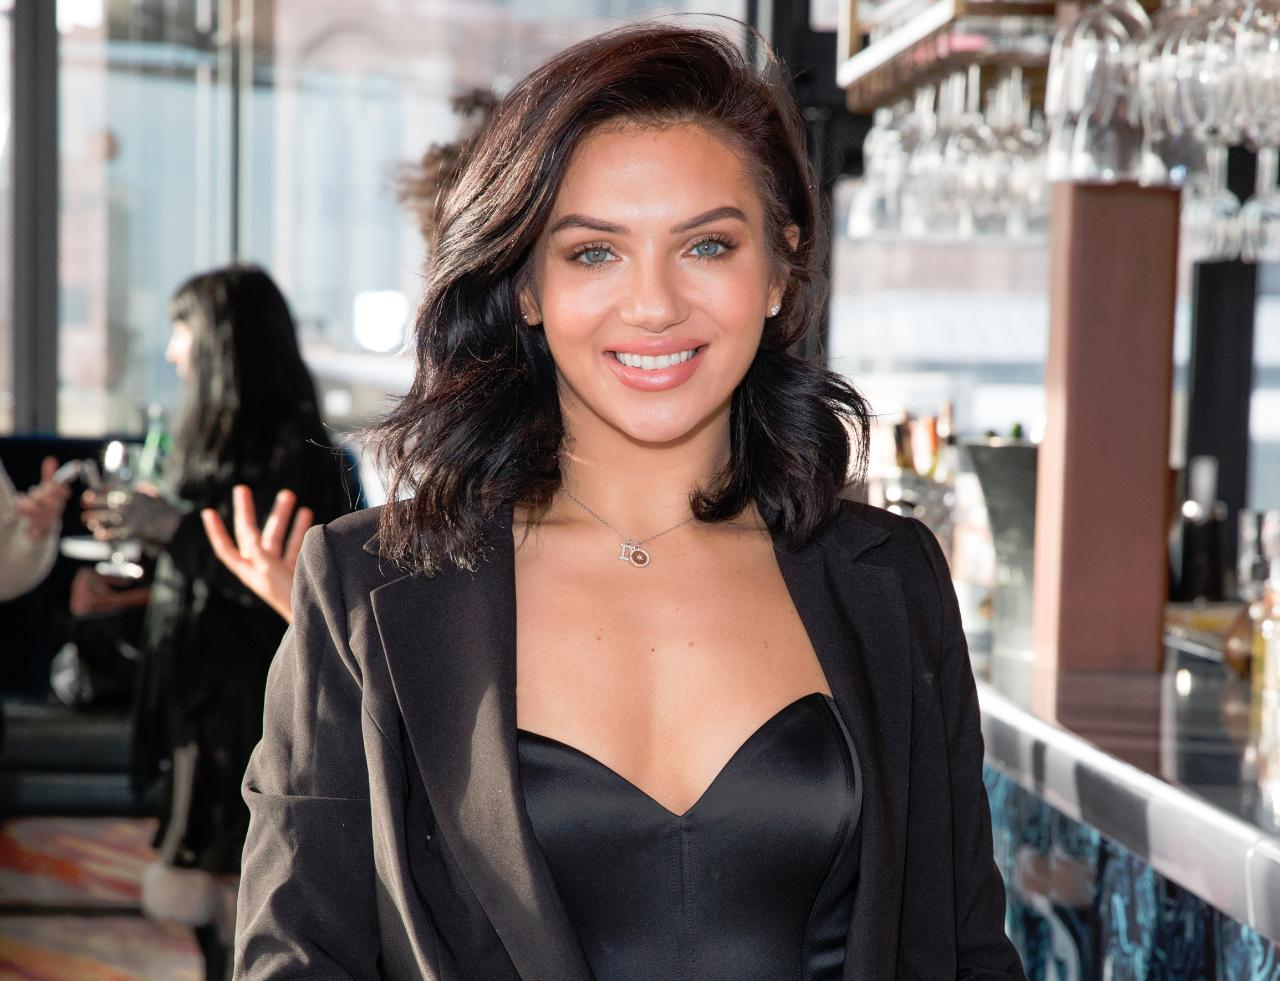 Love Island's Alexandra Cane reveals the reason behind weight loss